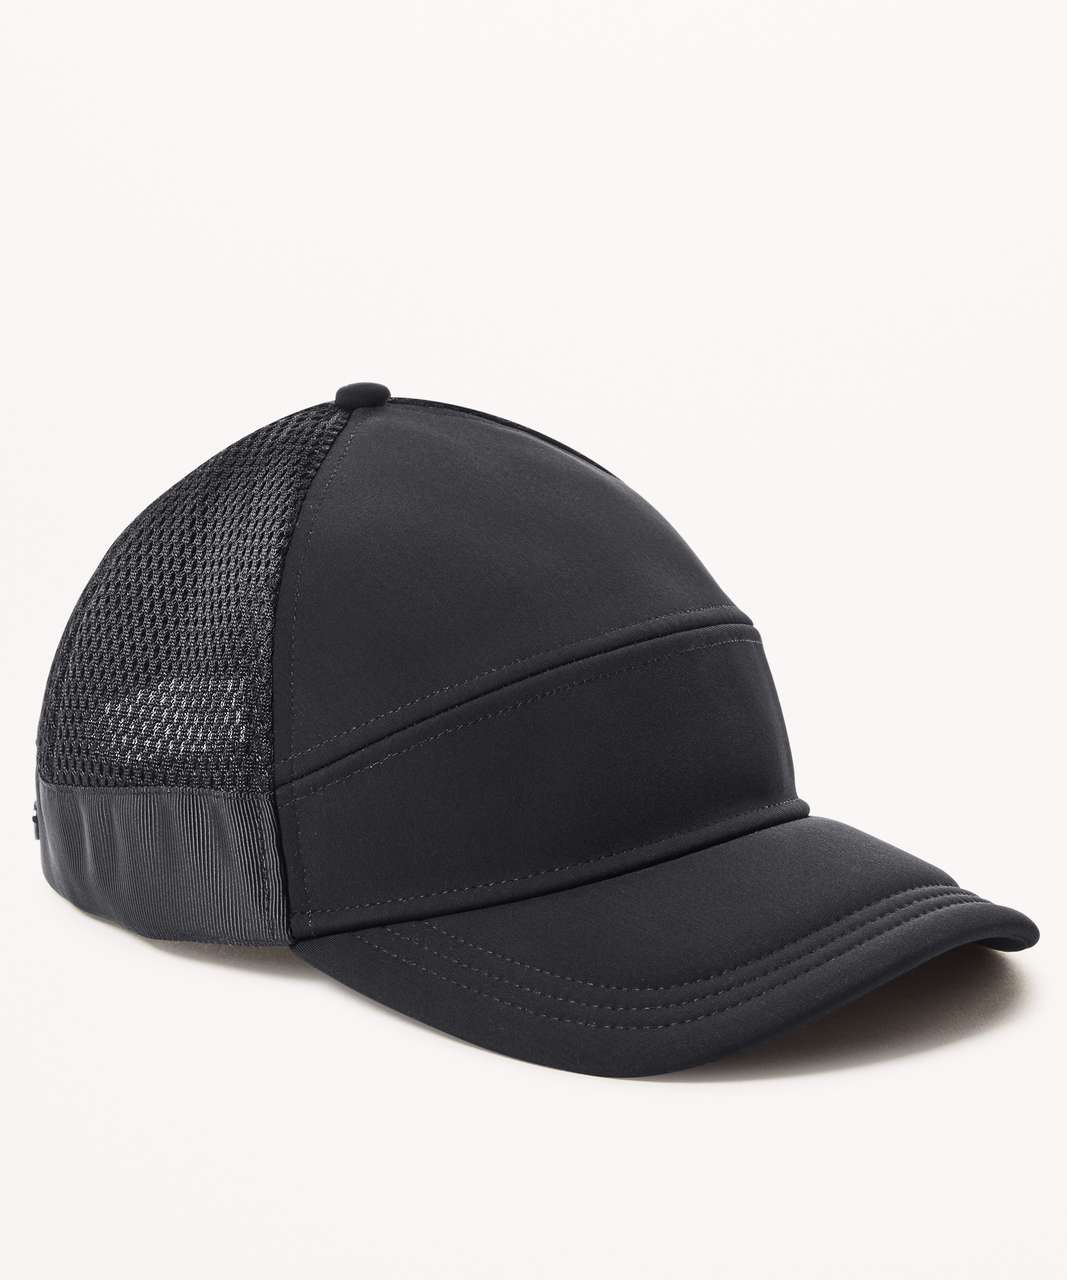 Lululemon Dash & Splash Cap II - Black